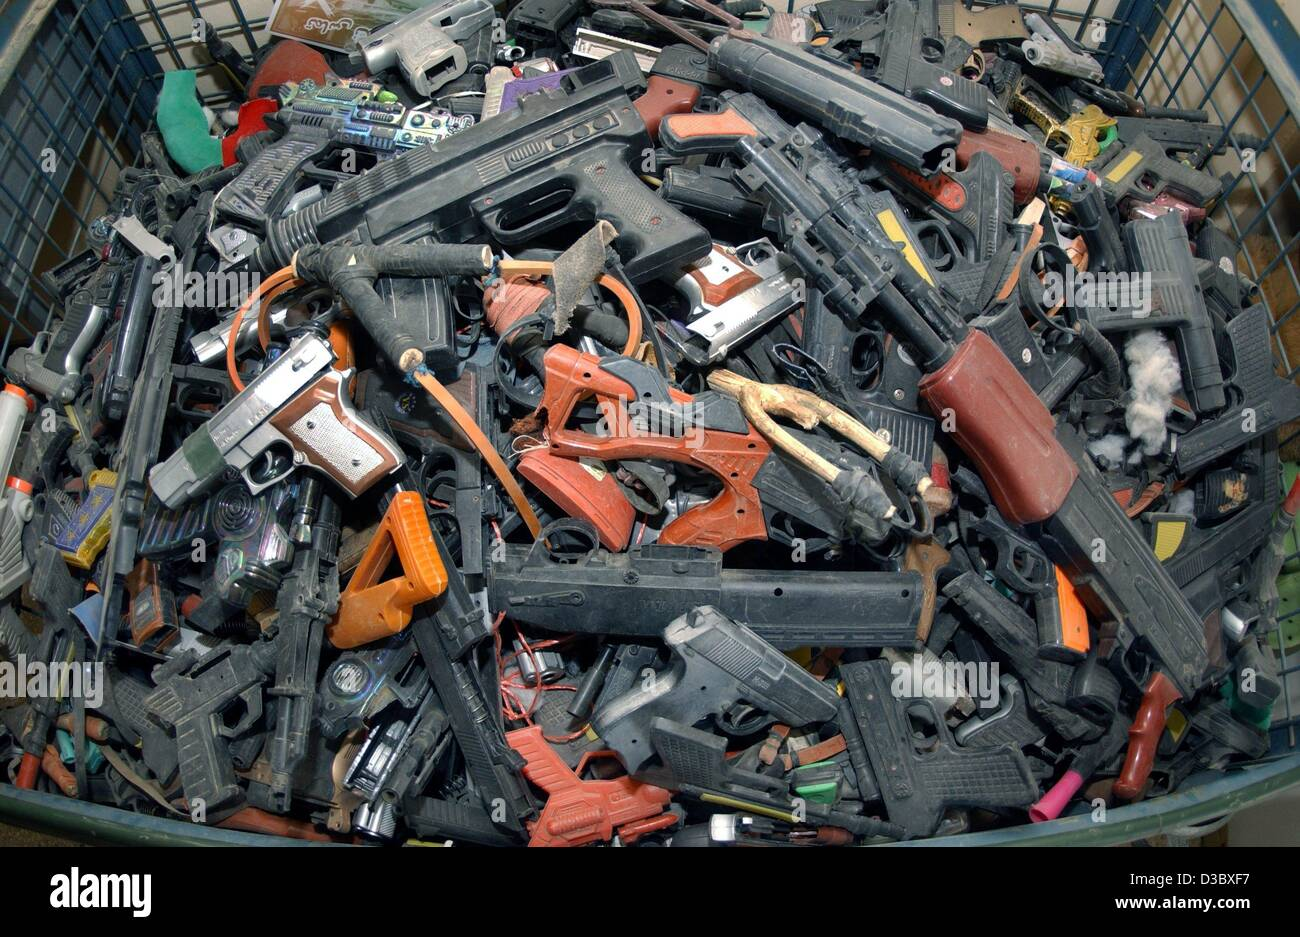 (dpa) - A view of a mountain of confiscated toy guns in a container on the premises of the German military camp Stock Photo